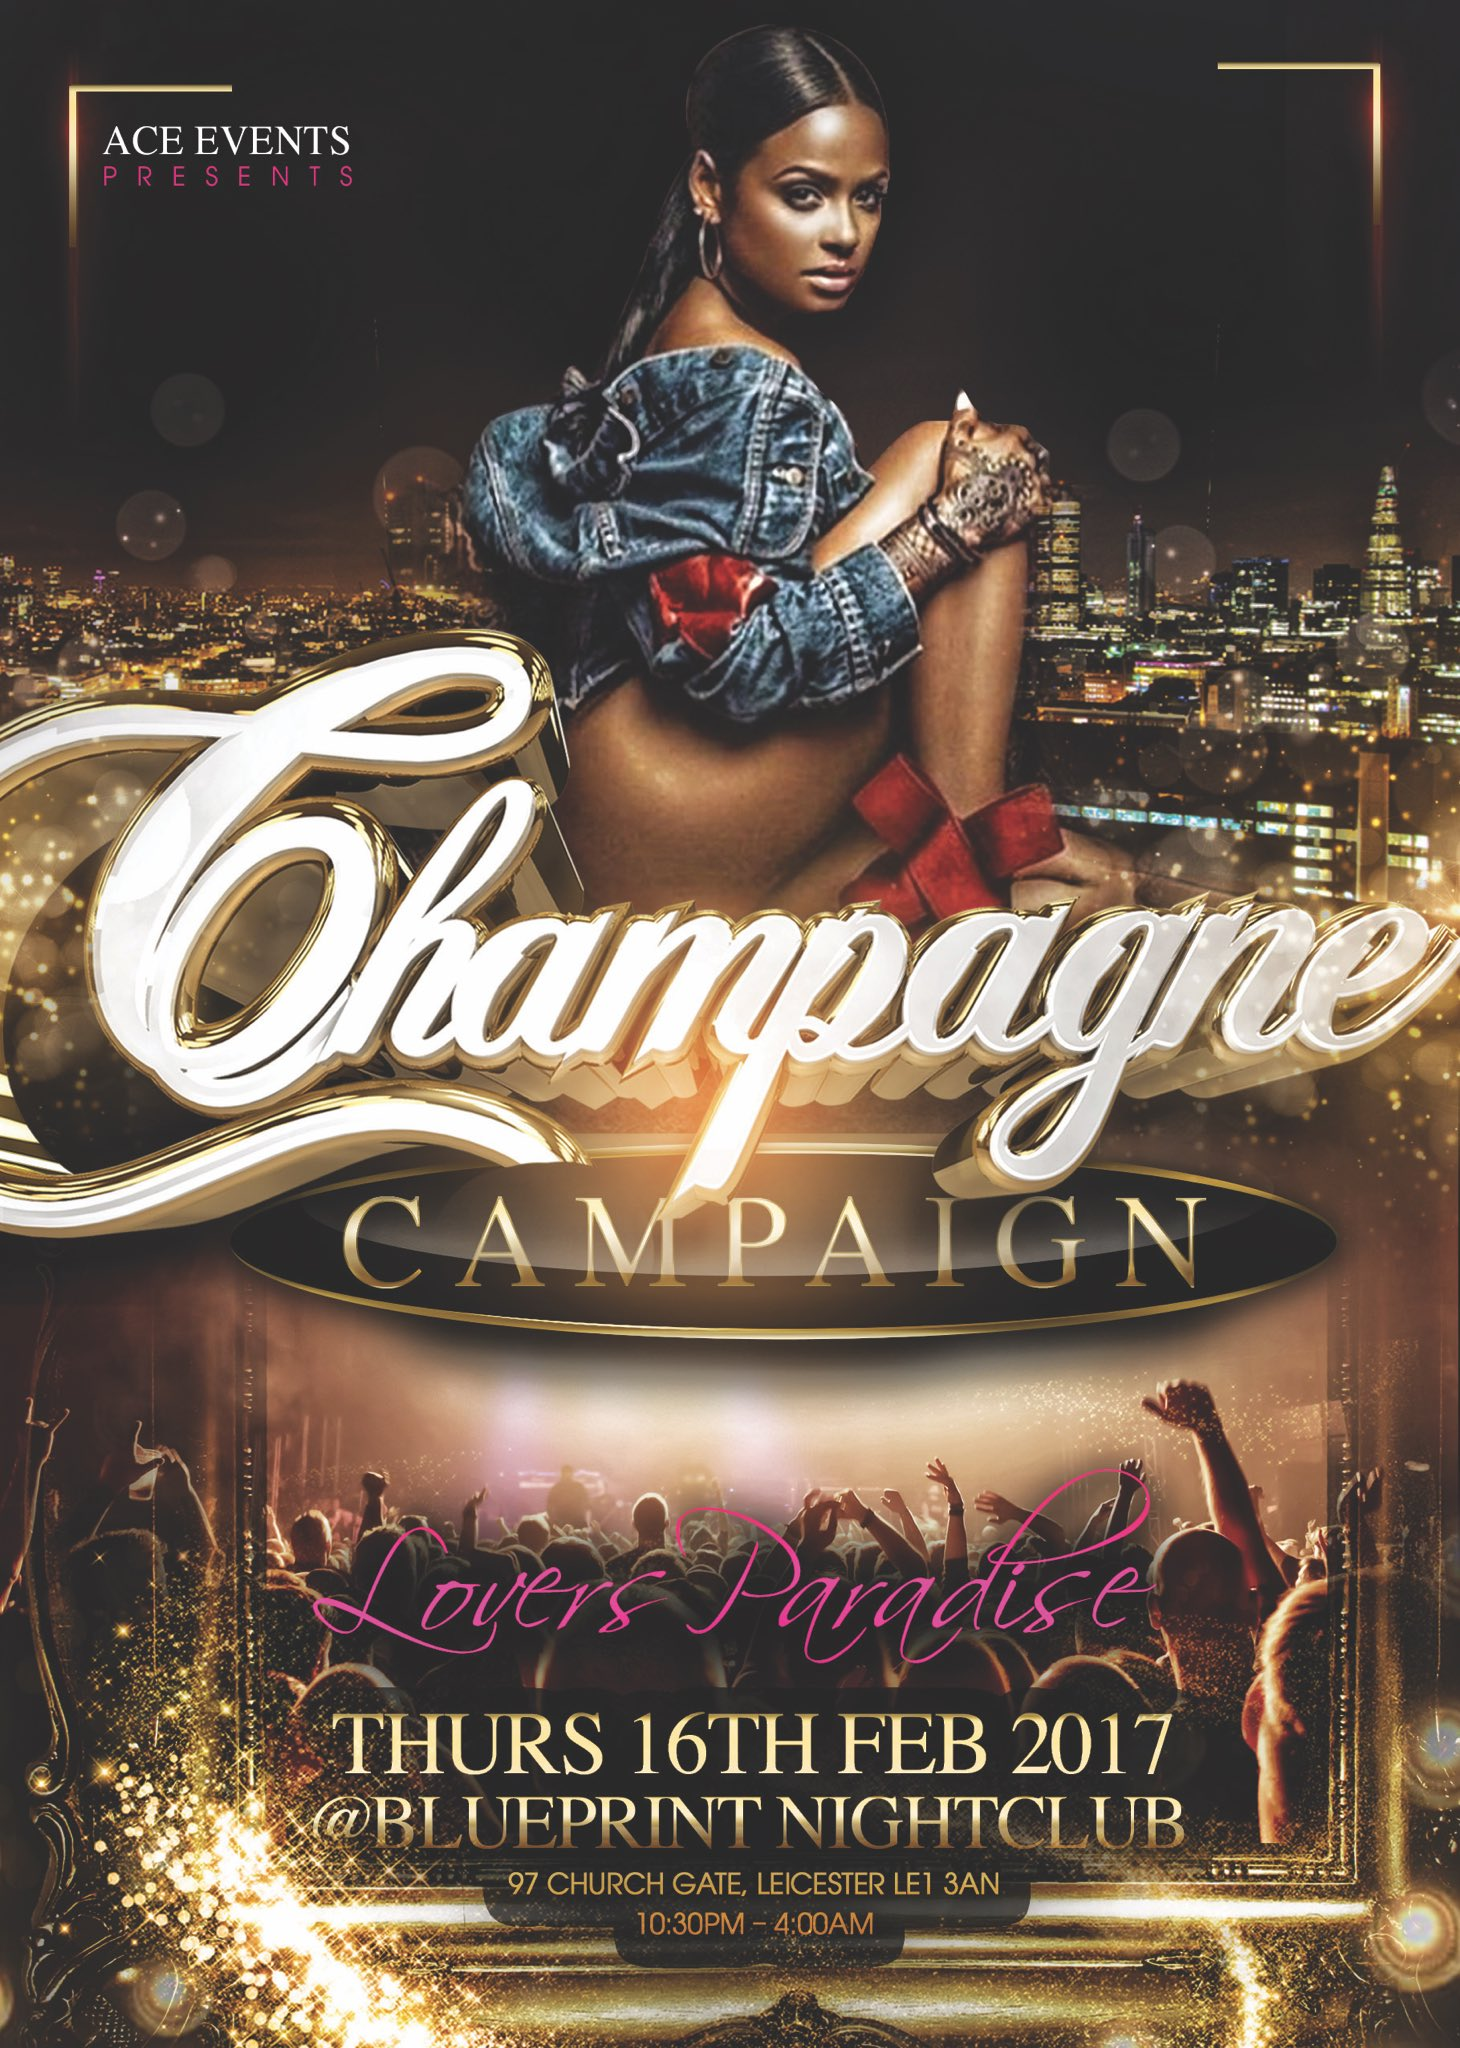 Champagnecampaign on twitter champagnecampaign lovers champagnecampaign on twitter champagnecampaign lovers paradise thursday 16th february 2017 in leicester httpsto9omrztipd malvernweather